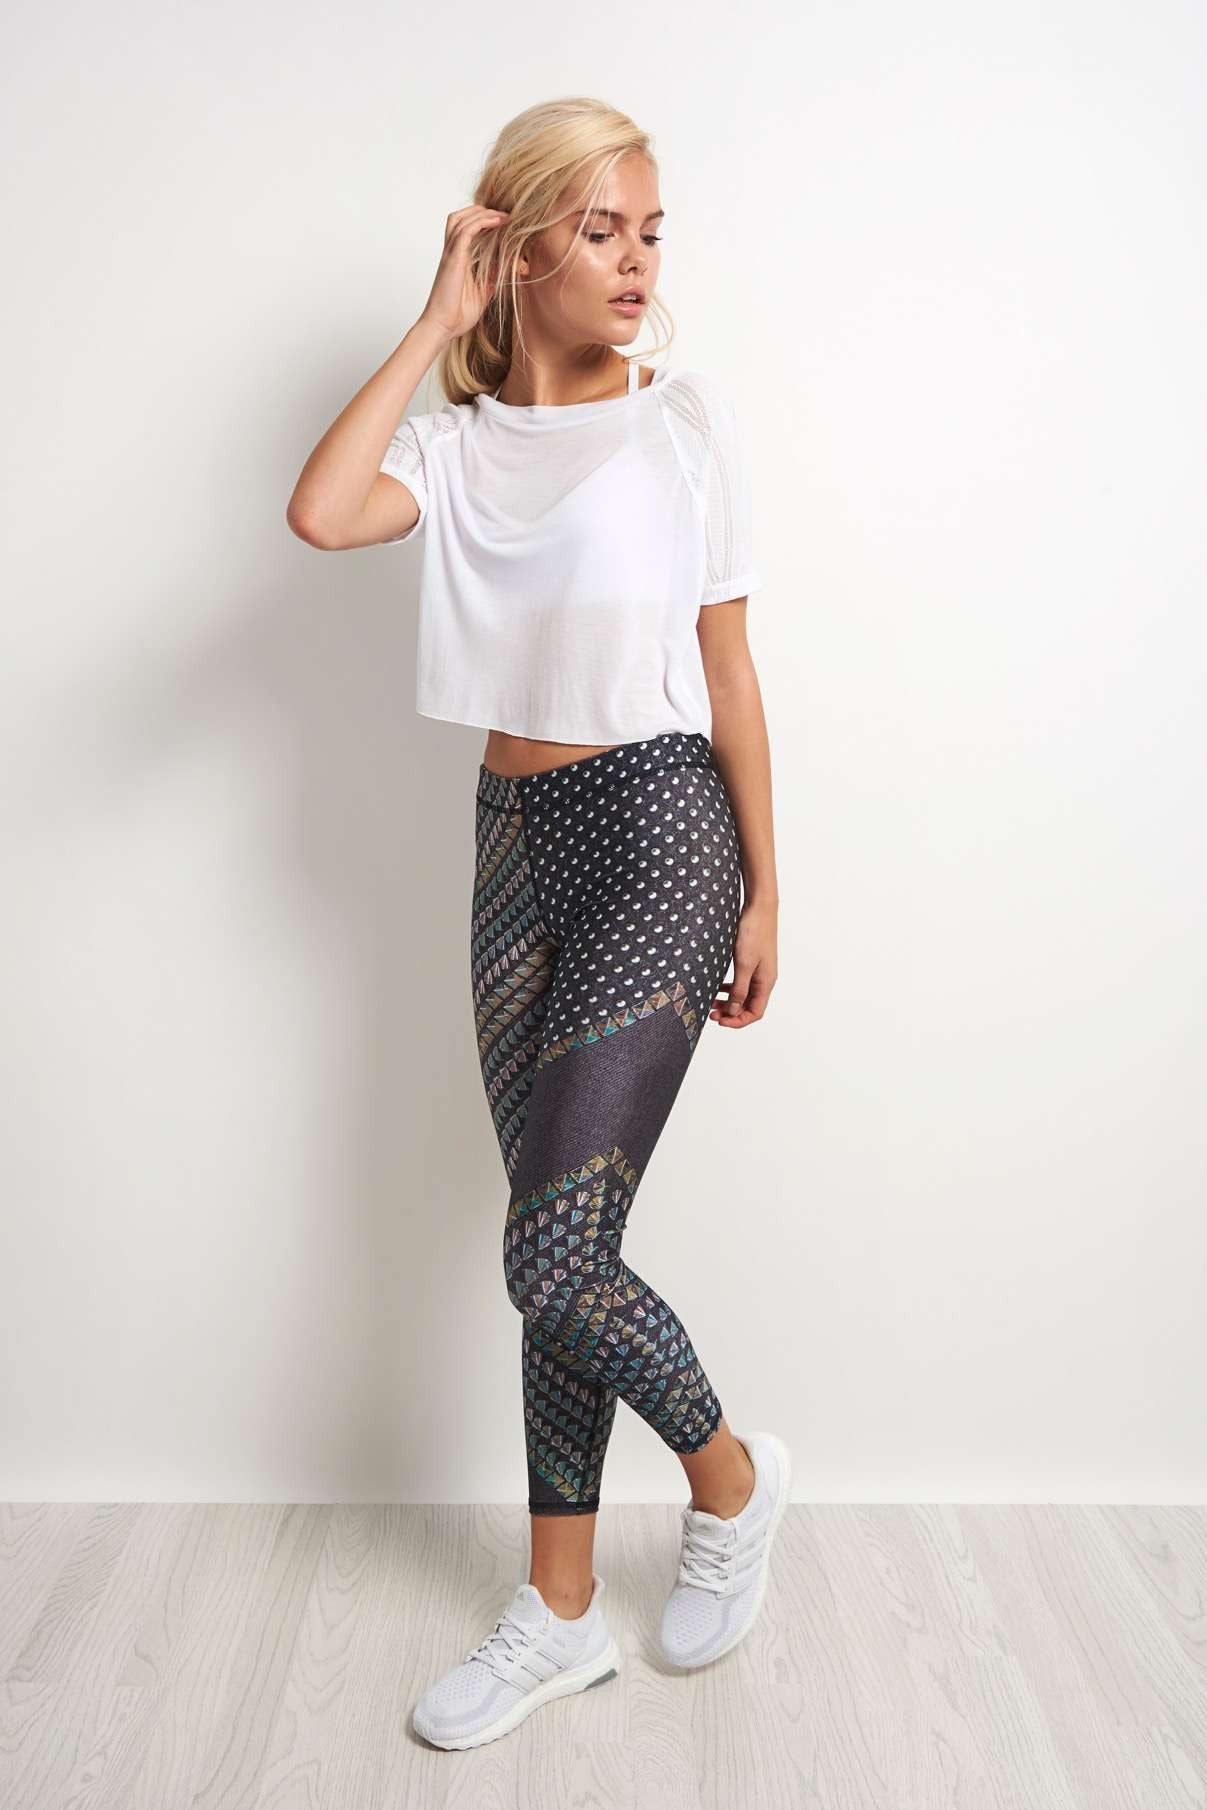 Terez You're a Stud Performance Legging image 4 - The Sports Edit